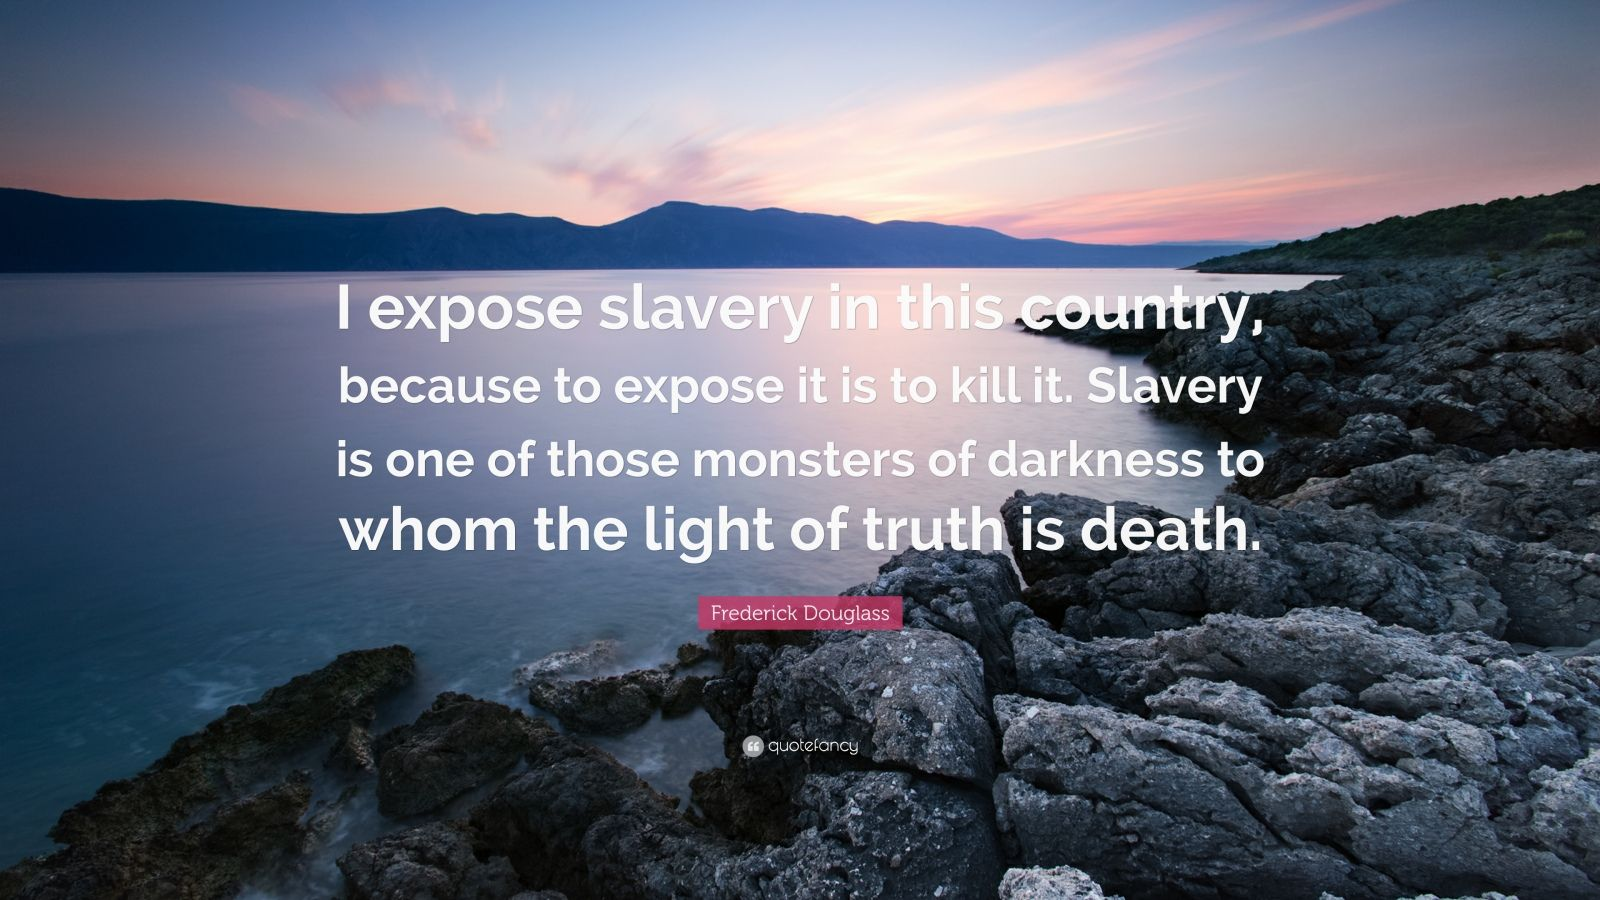 "Frederick Douglass Quote: ""I expose slavery in this country, because to expose it is to kill it. Slavery is one of those monsters of darkness to whom the light of truth is death."""